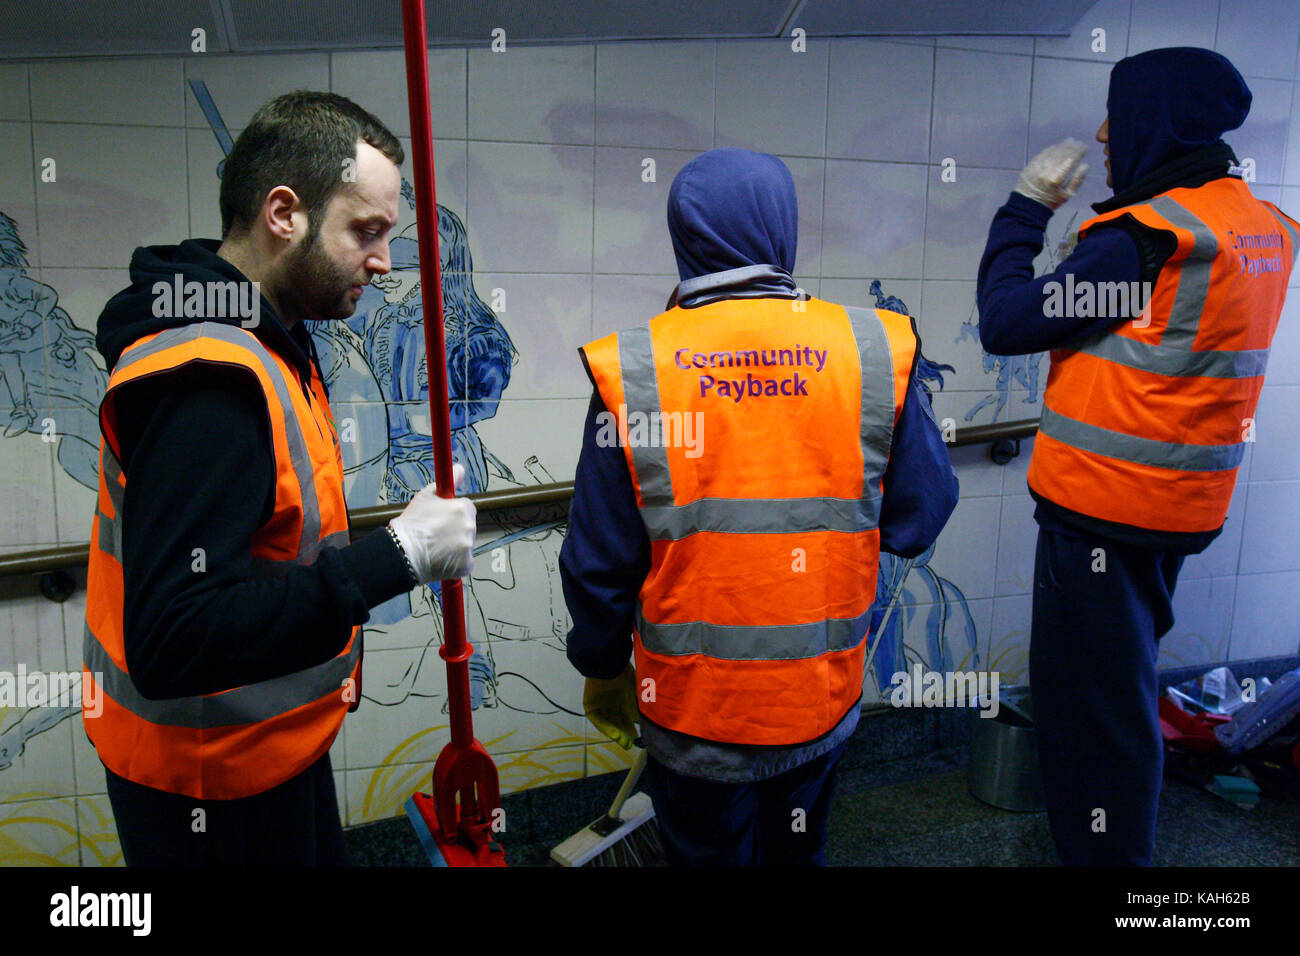 Offenders cleaning the tunnel walls of Hyde Park Corner tube as part of a community payback scheme. London. 05.04.2011. - Stock Image